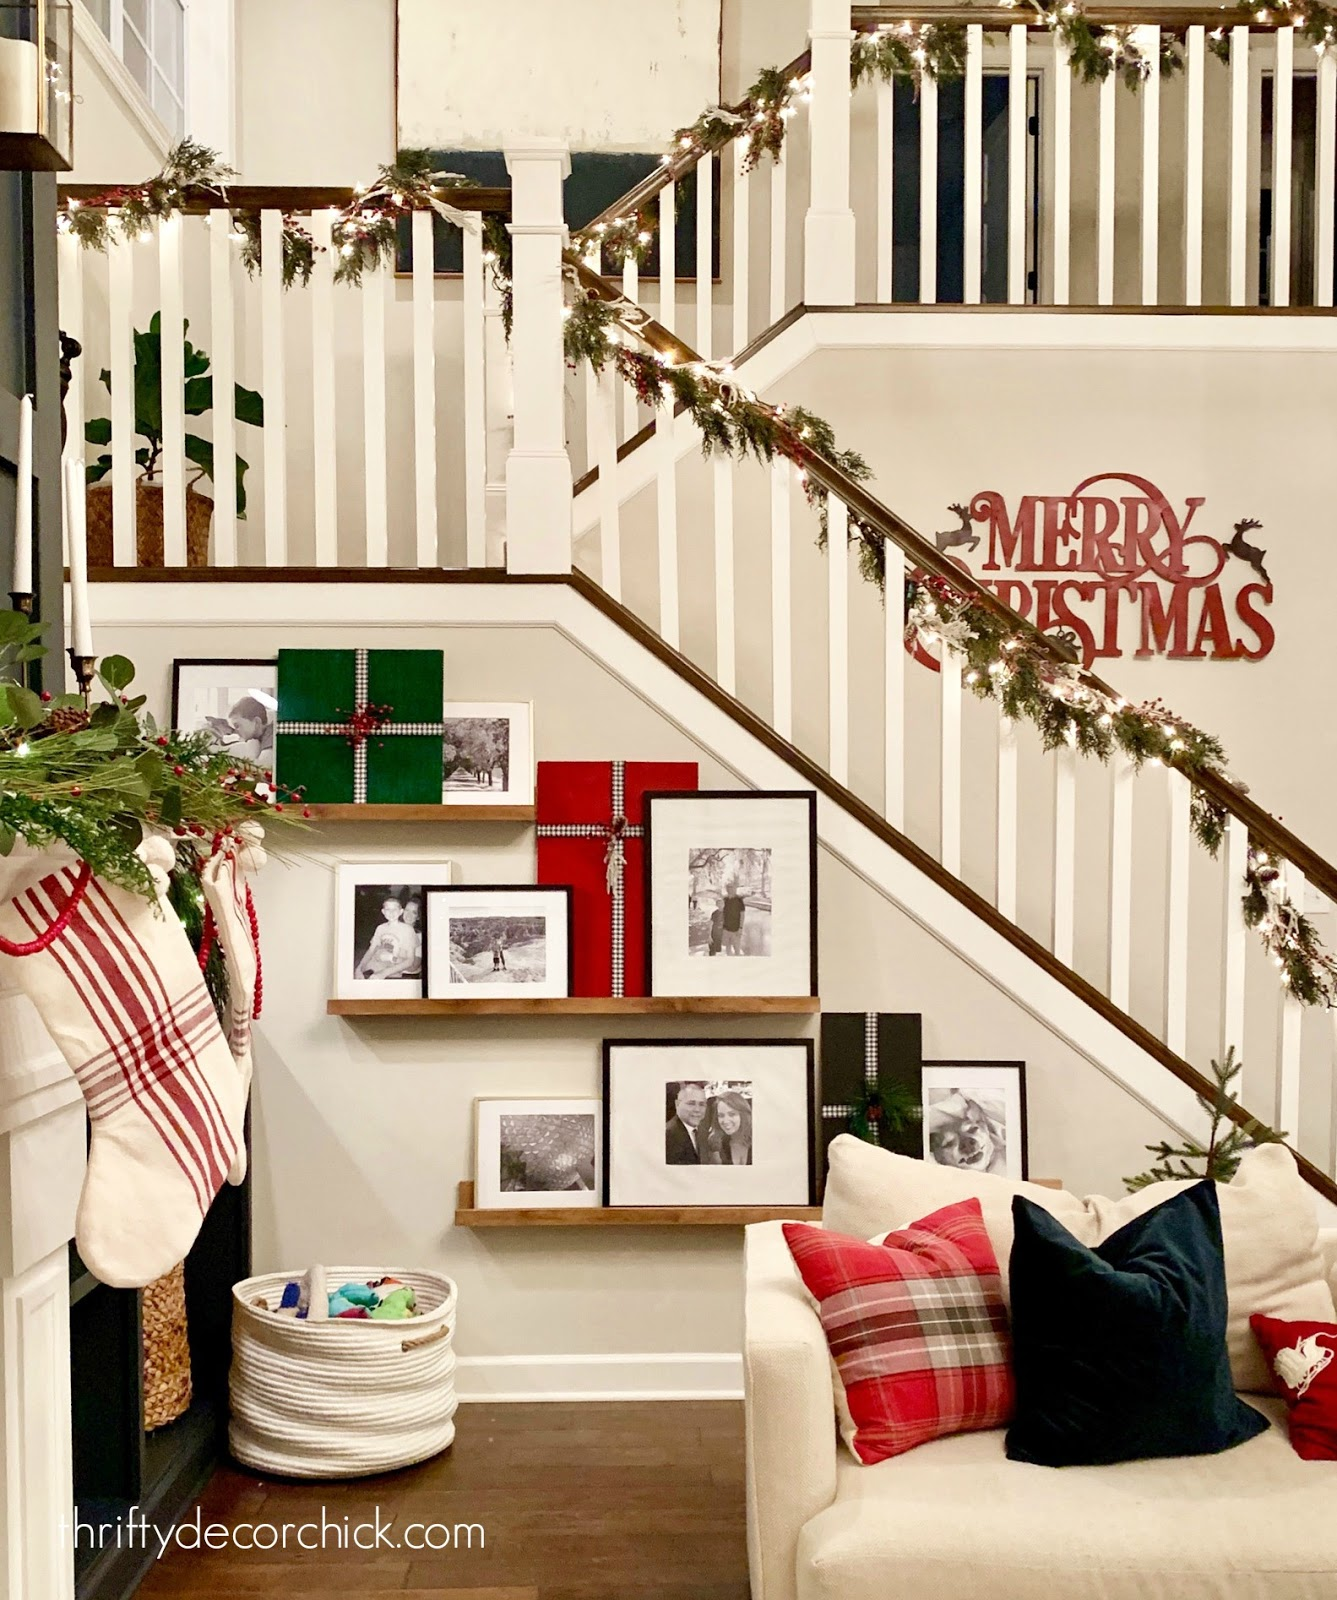 open stairs and railings with Christmas garland